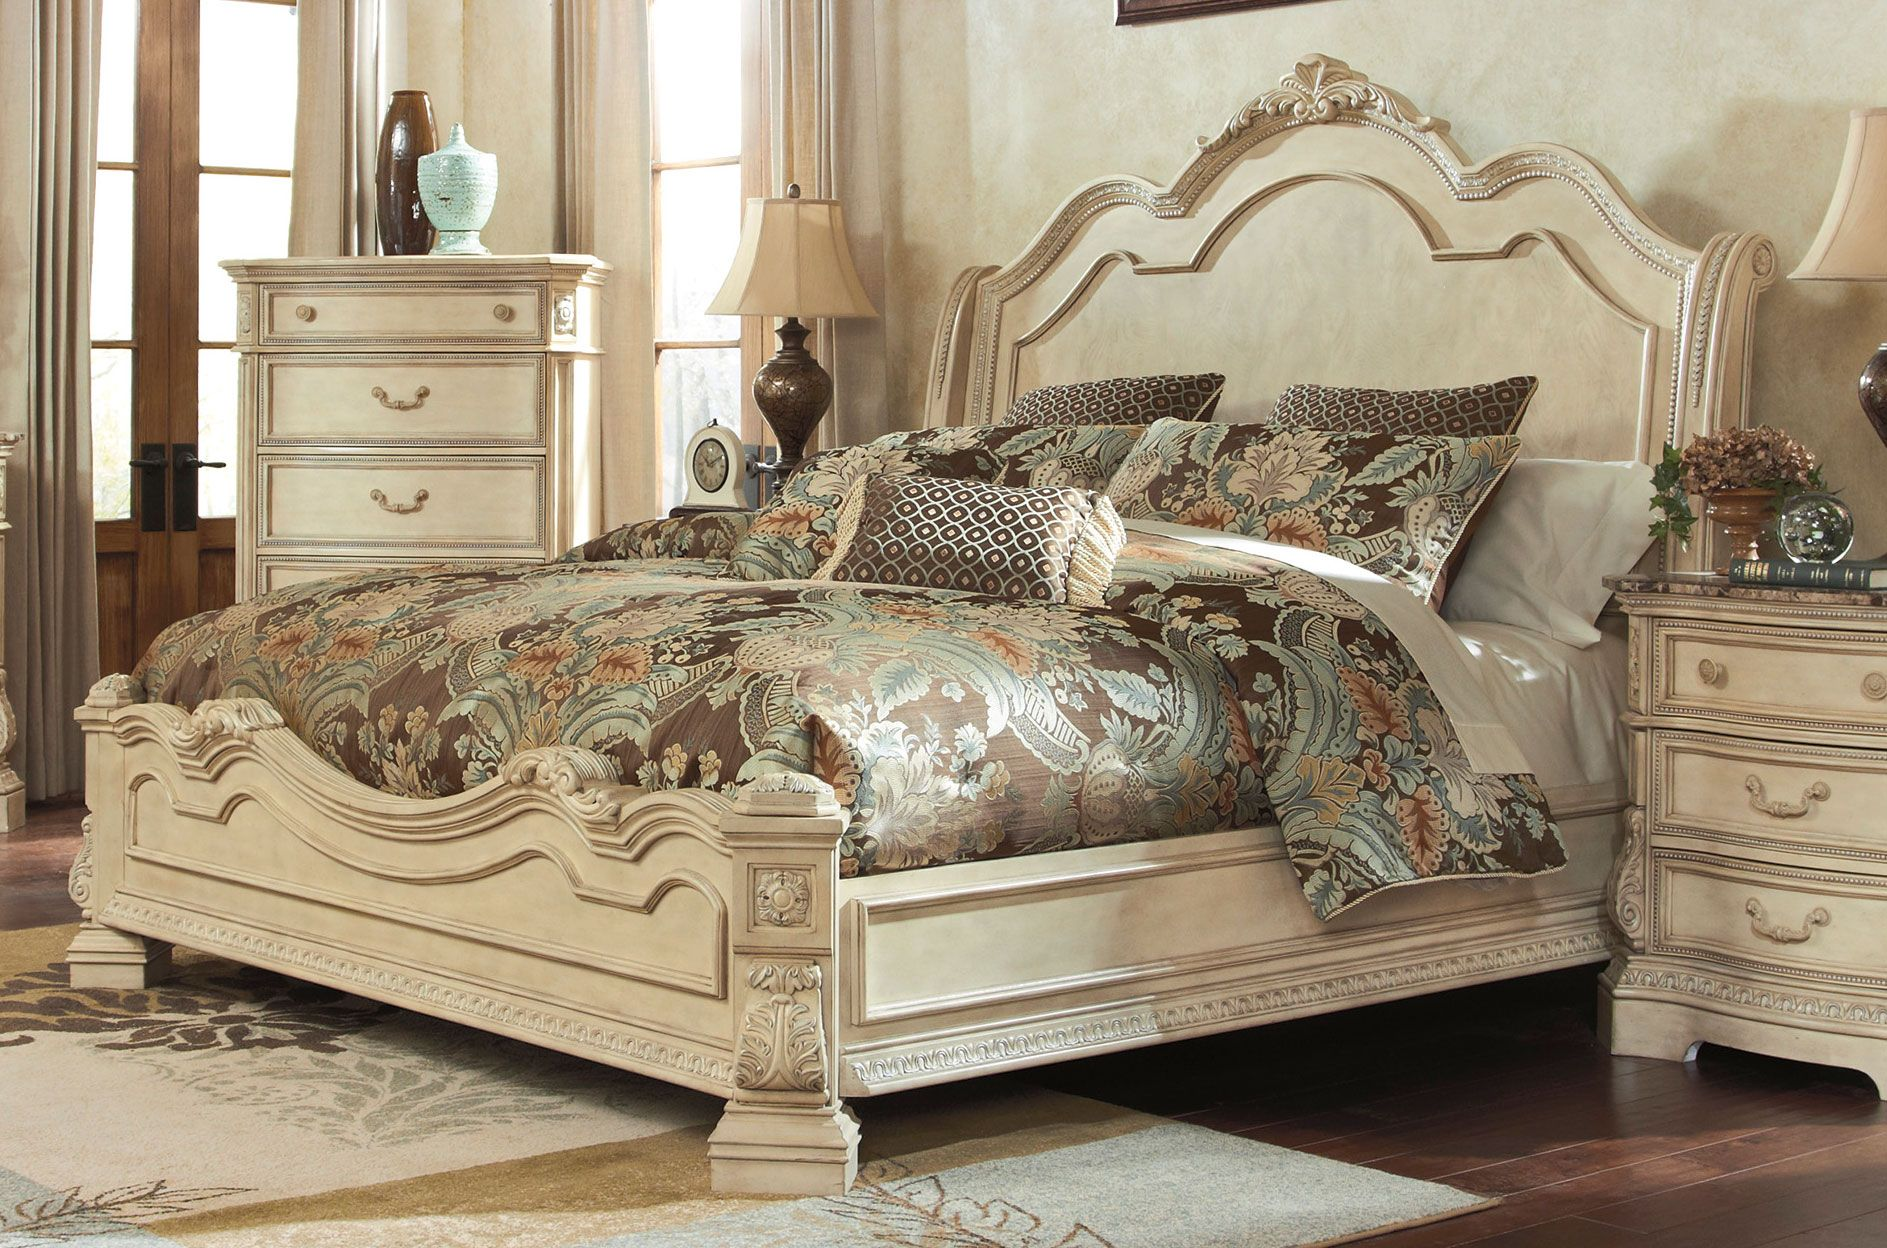 Ortanique King Sleigh Bed By Millennium C 243 H 236 Nh ảnh